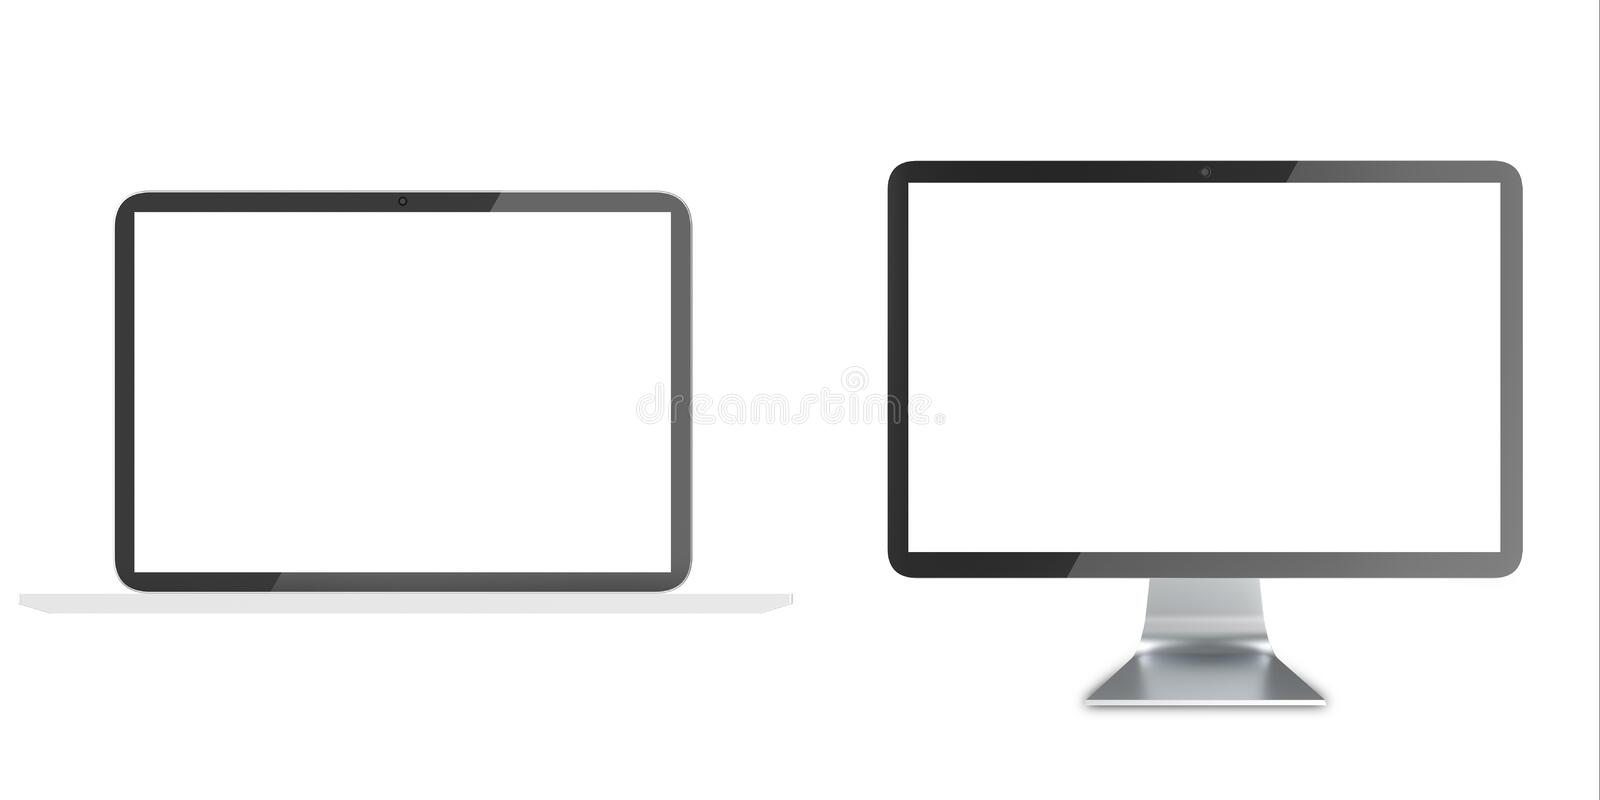 Notebook, Lcd monitor, personal devices with empty LCD screens isolated on white background. royalty free illustration